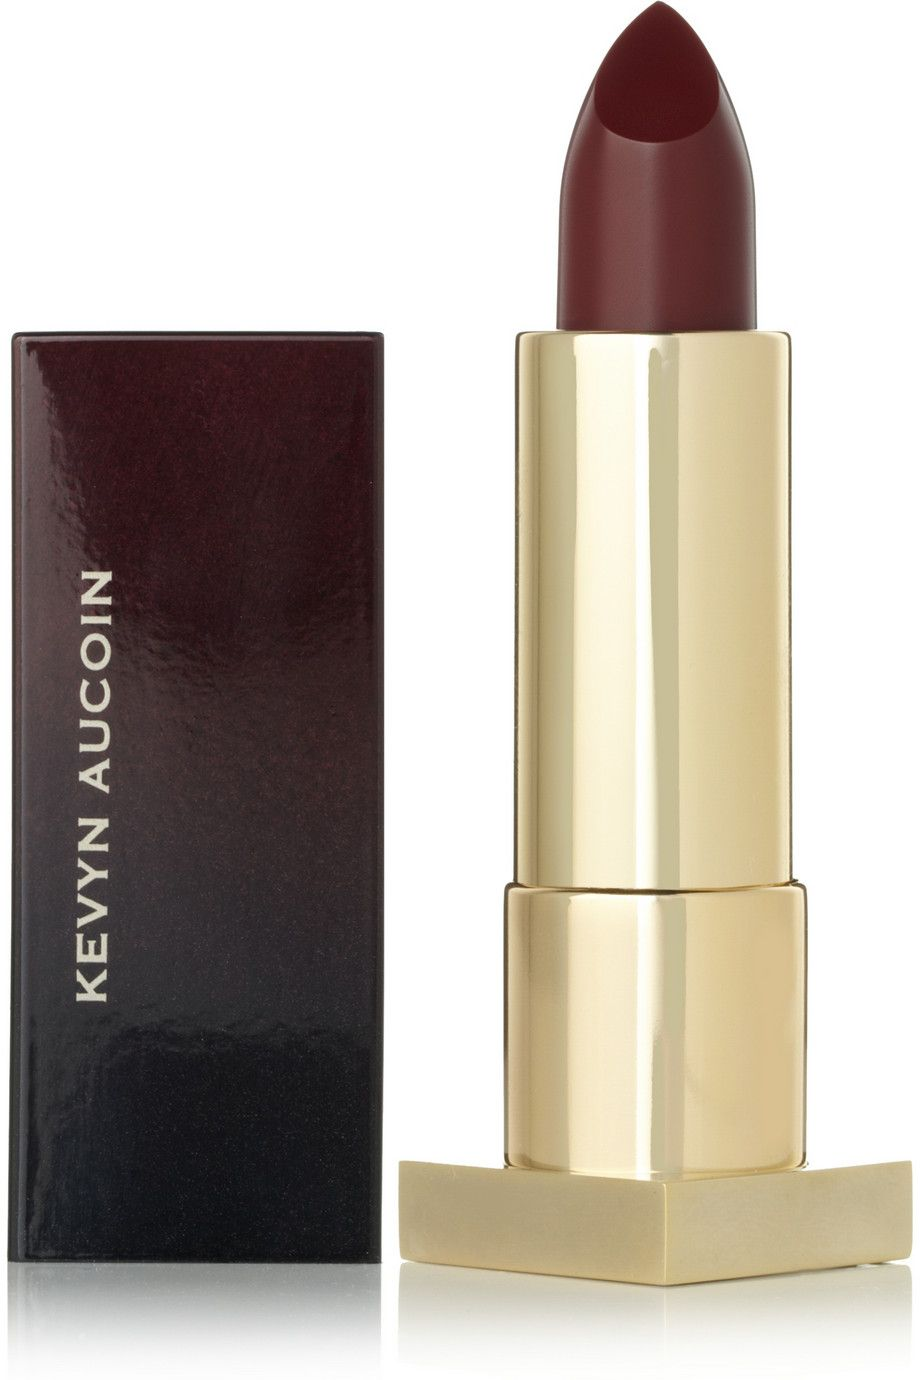 Kevyn Aucoin - The Expert Lip Color - Blood Roses. Shop the Tough Luxe issue of The Edit magazine.